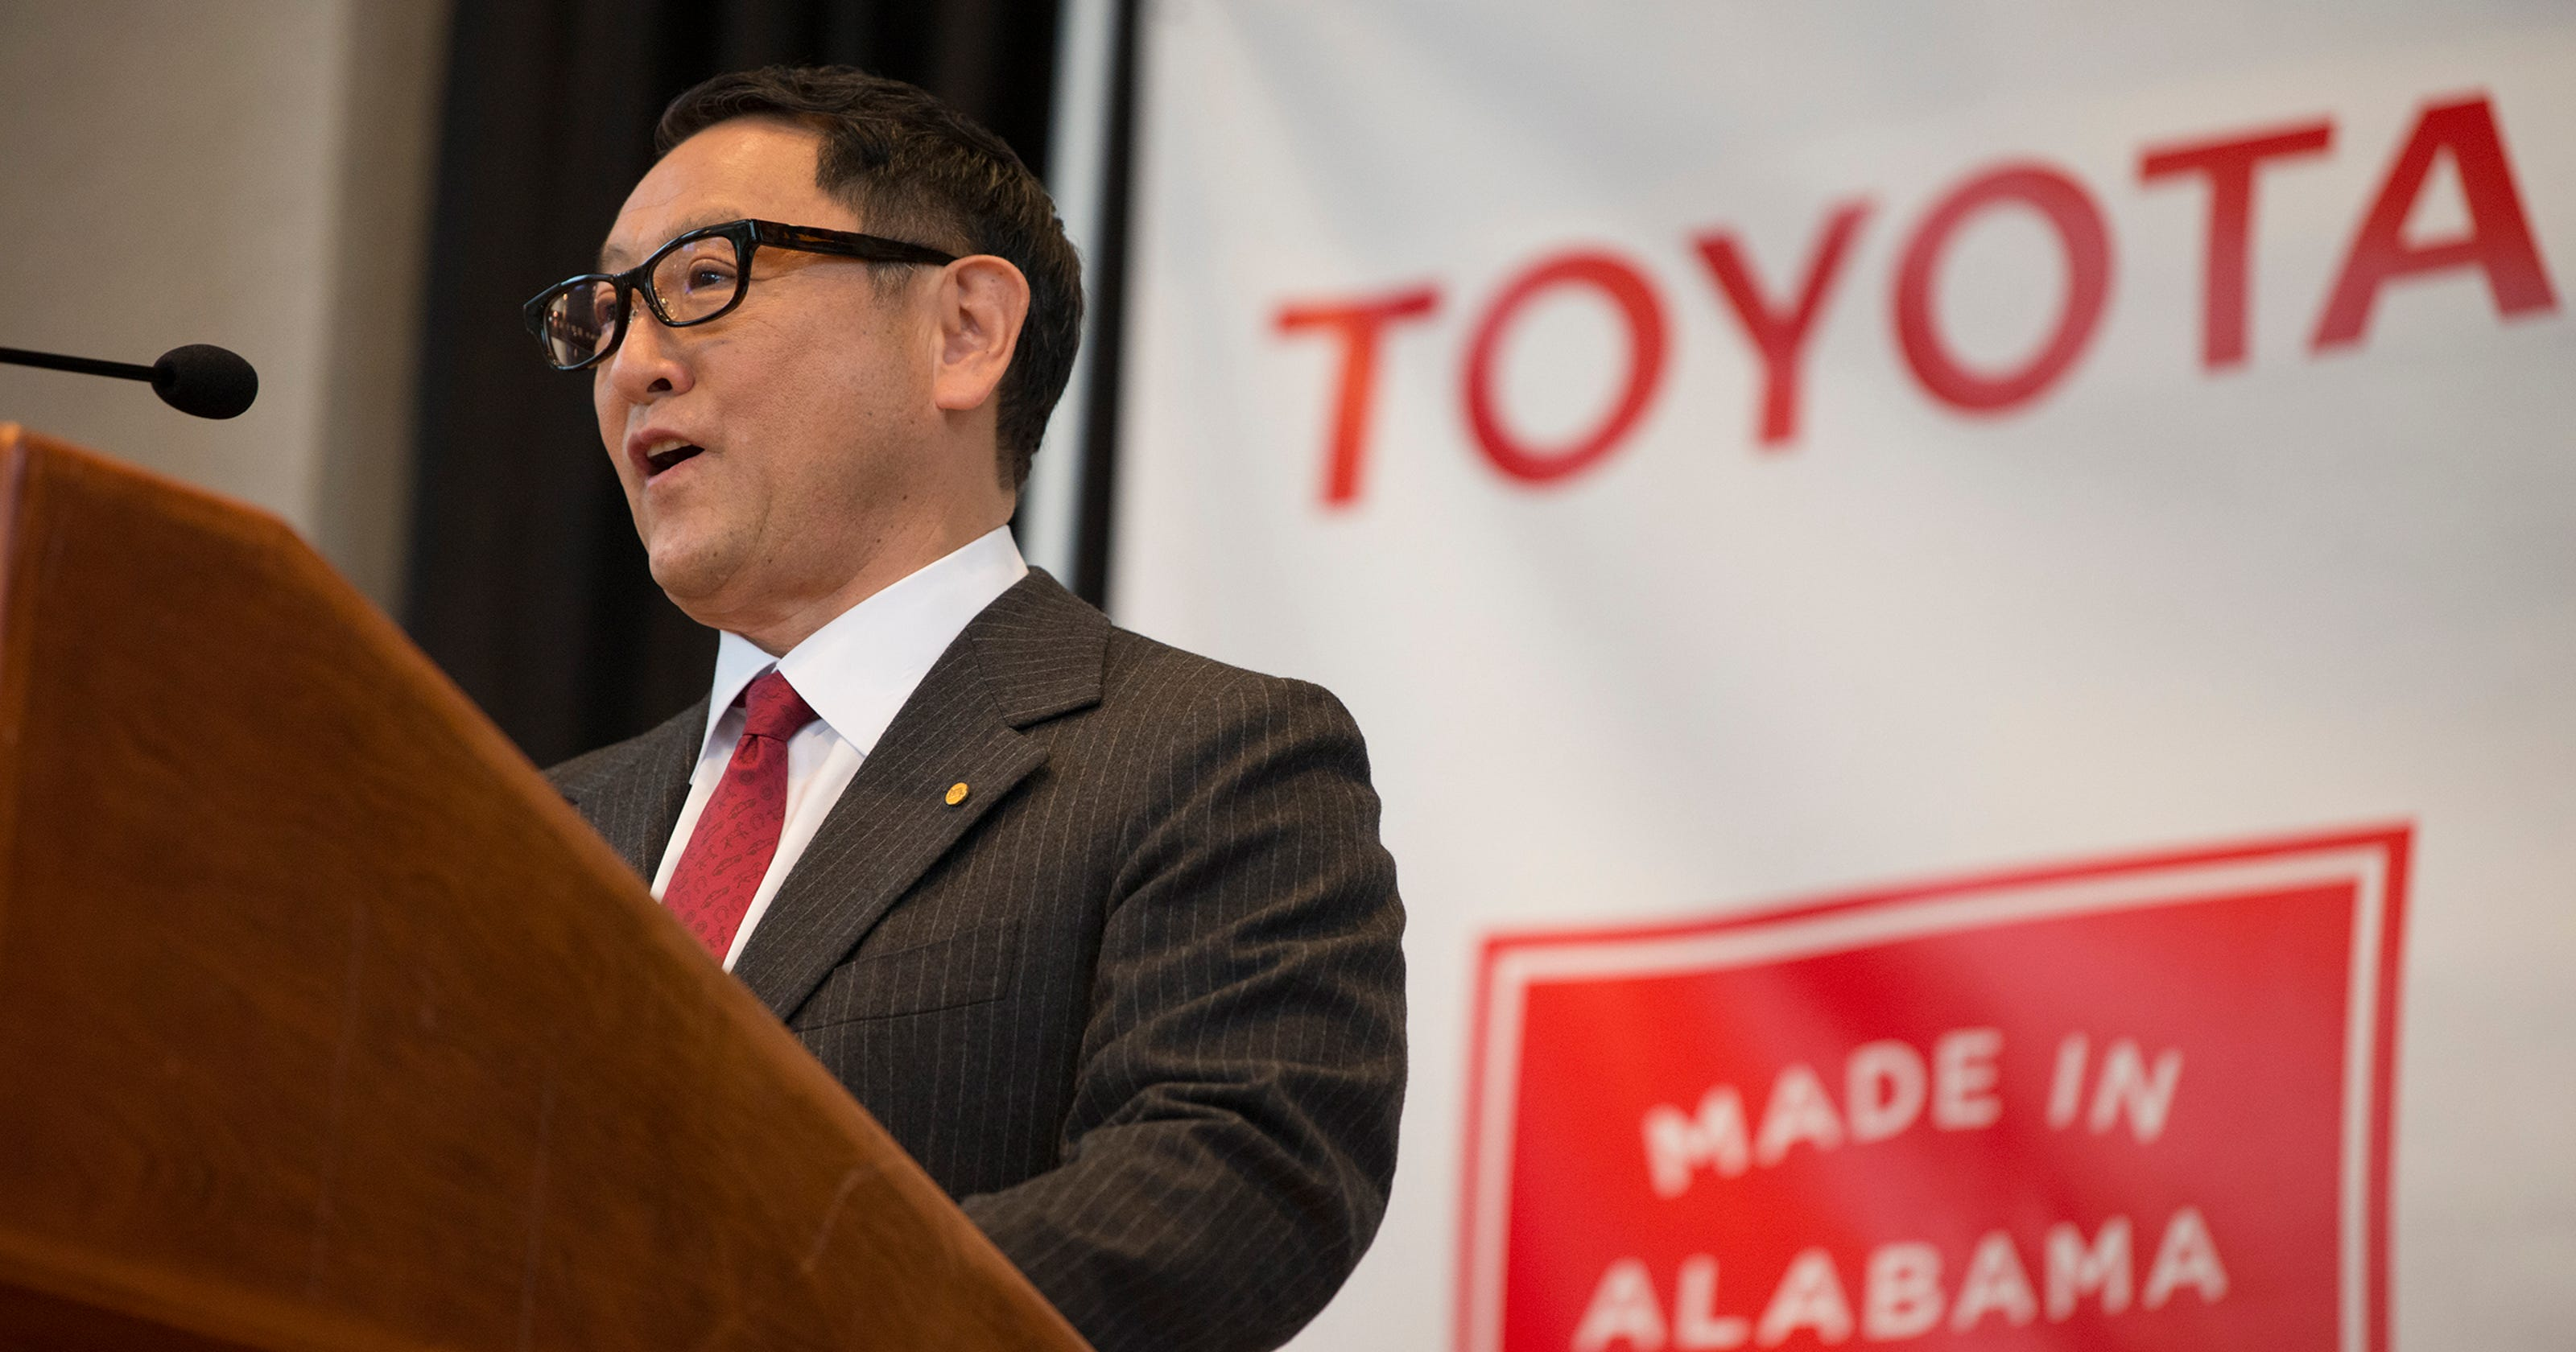 Alabama Offered Big Incentives To Lure Toyota Mazda Plant